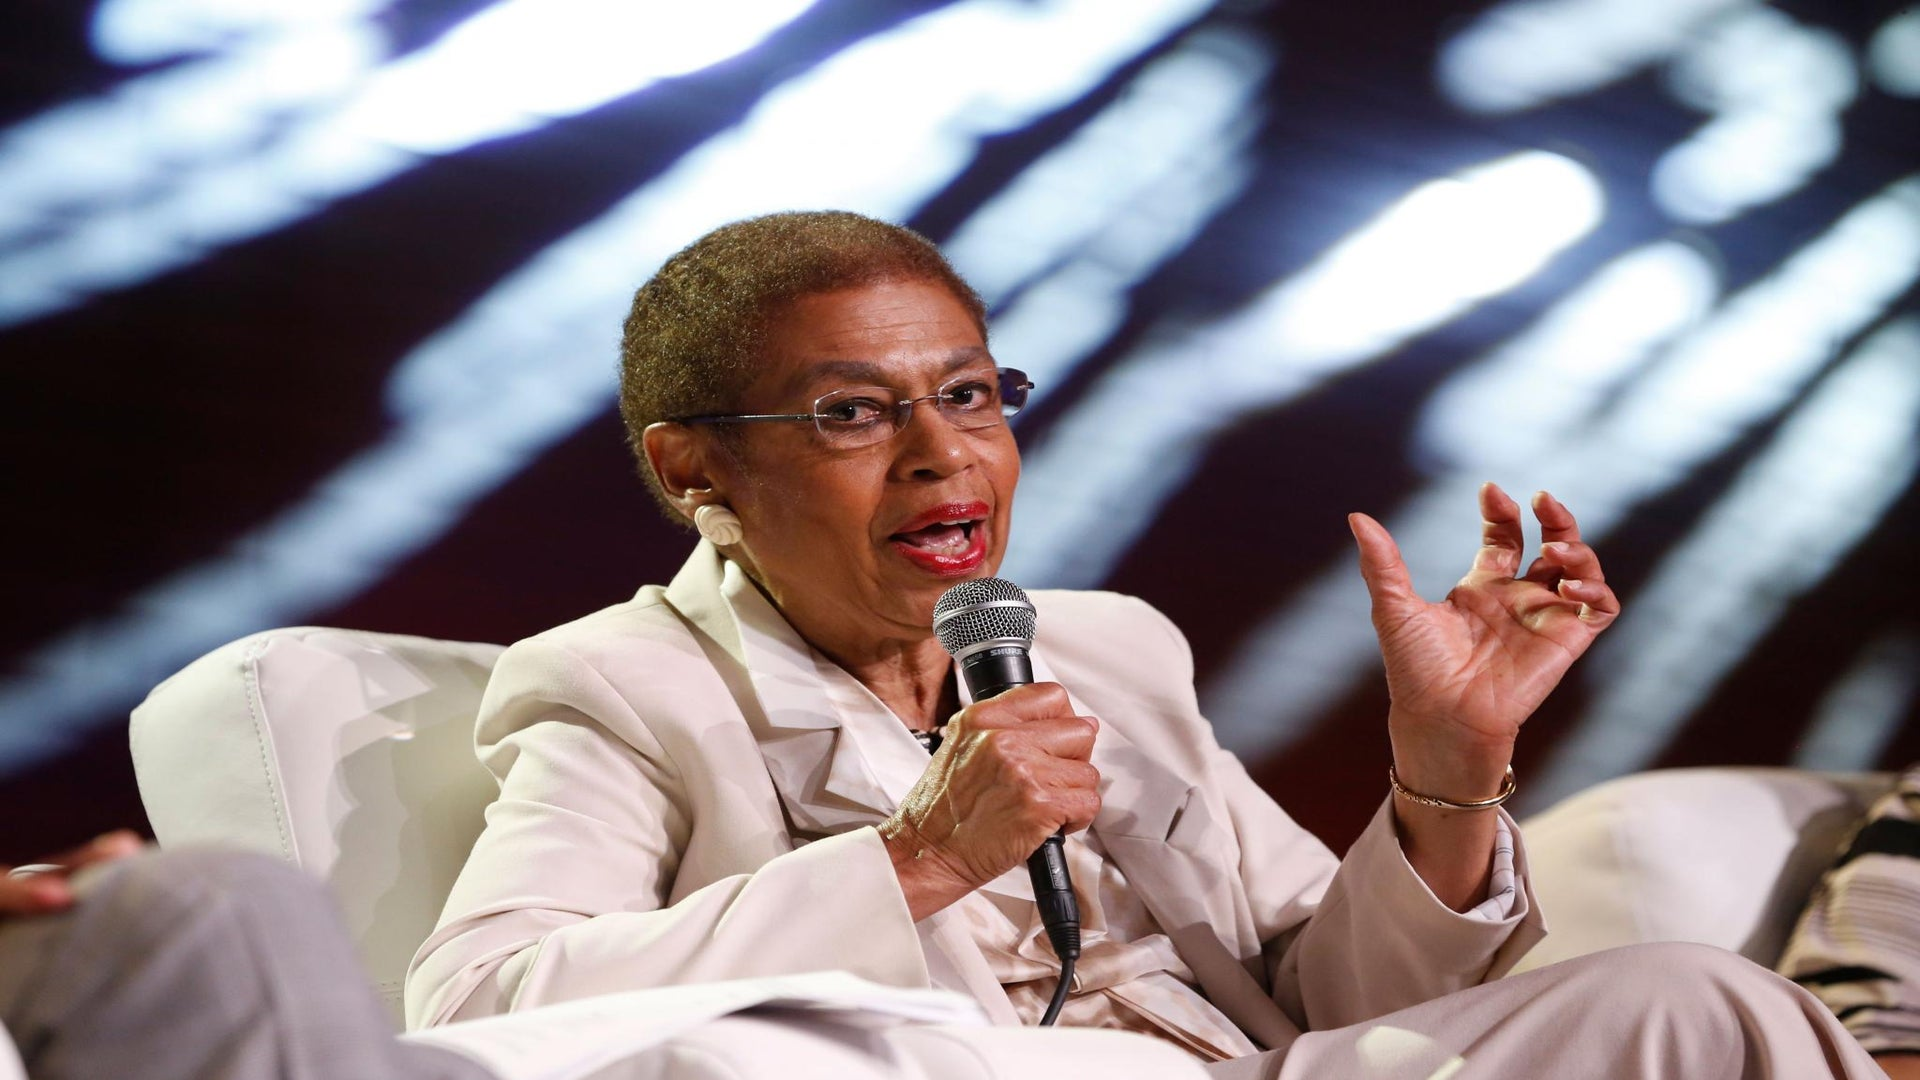 ESSENCE Festival: Civil Rights Panelists Tackle Issues in the Black Community